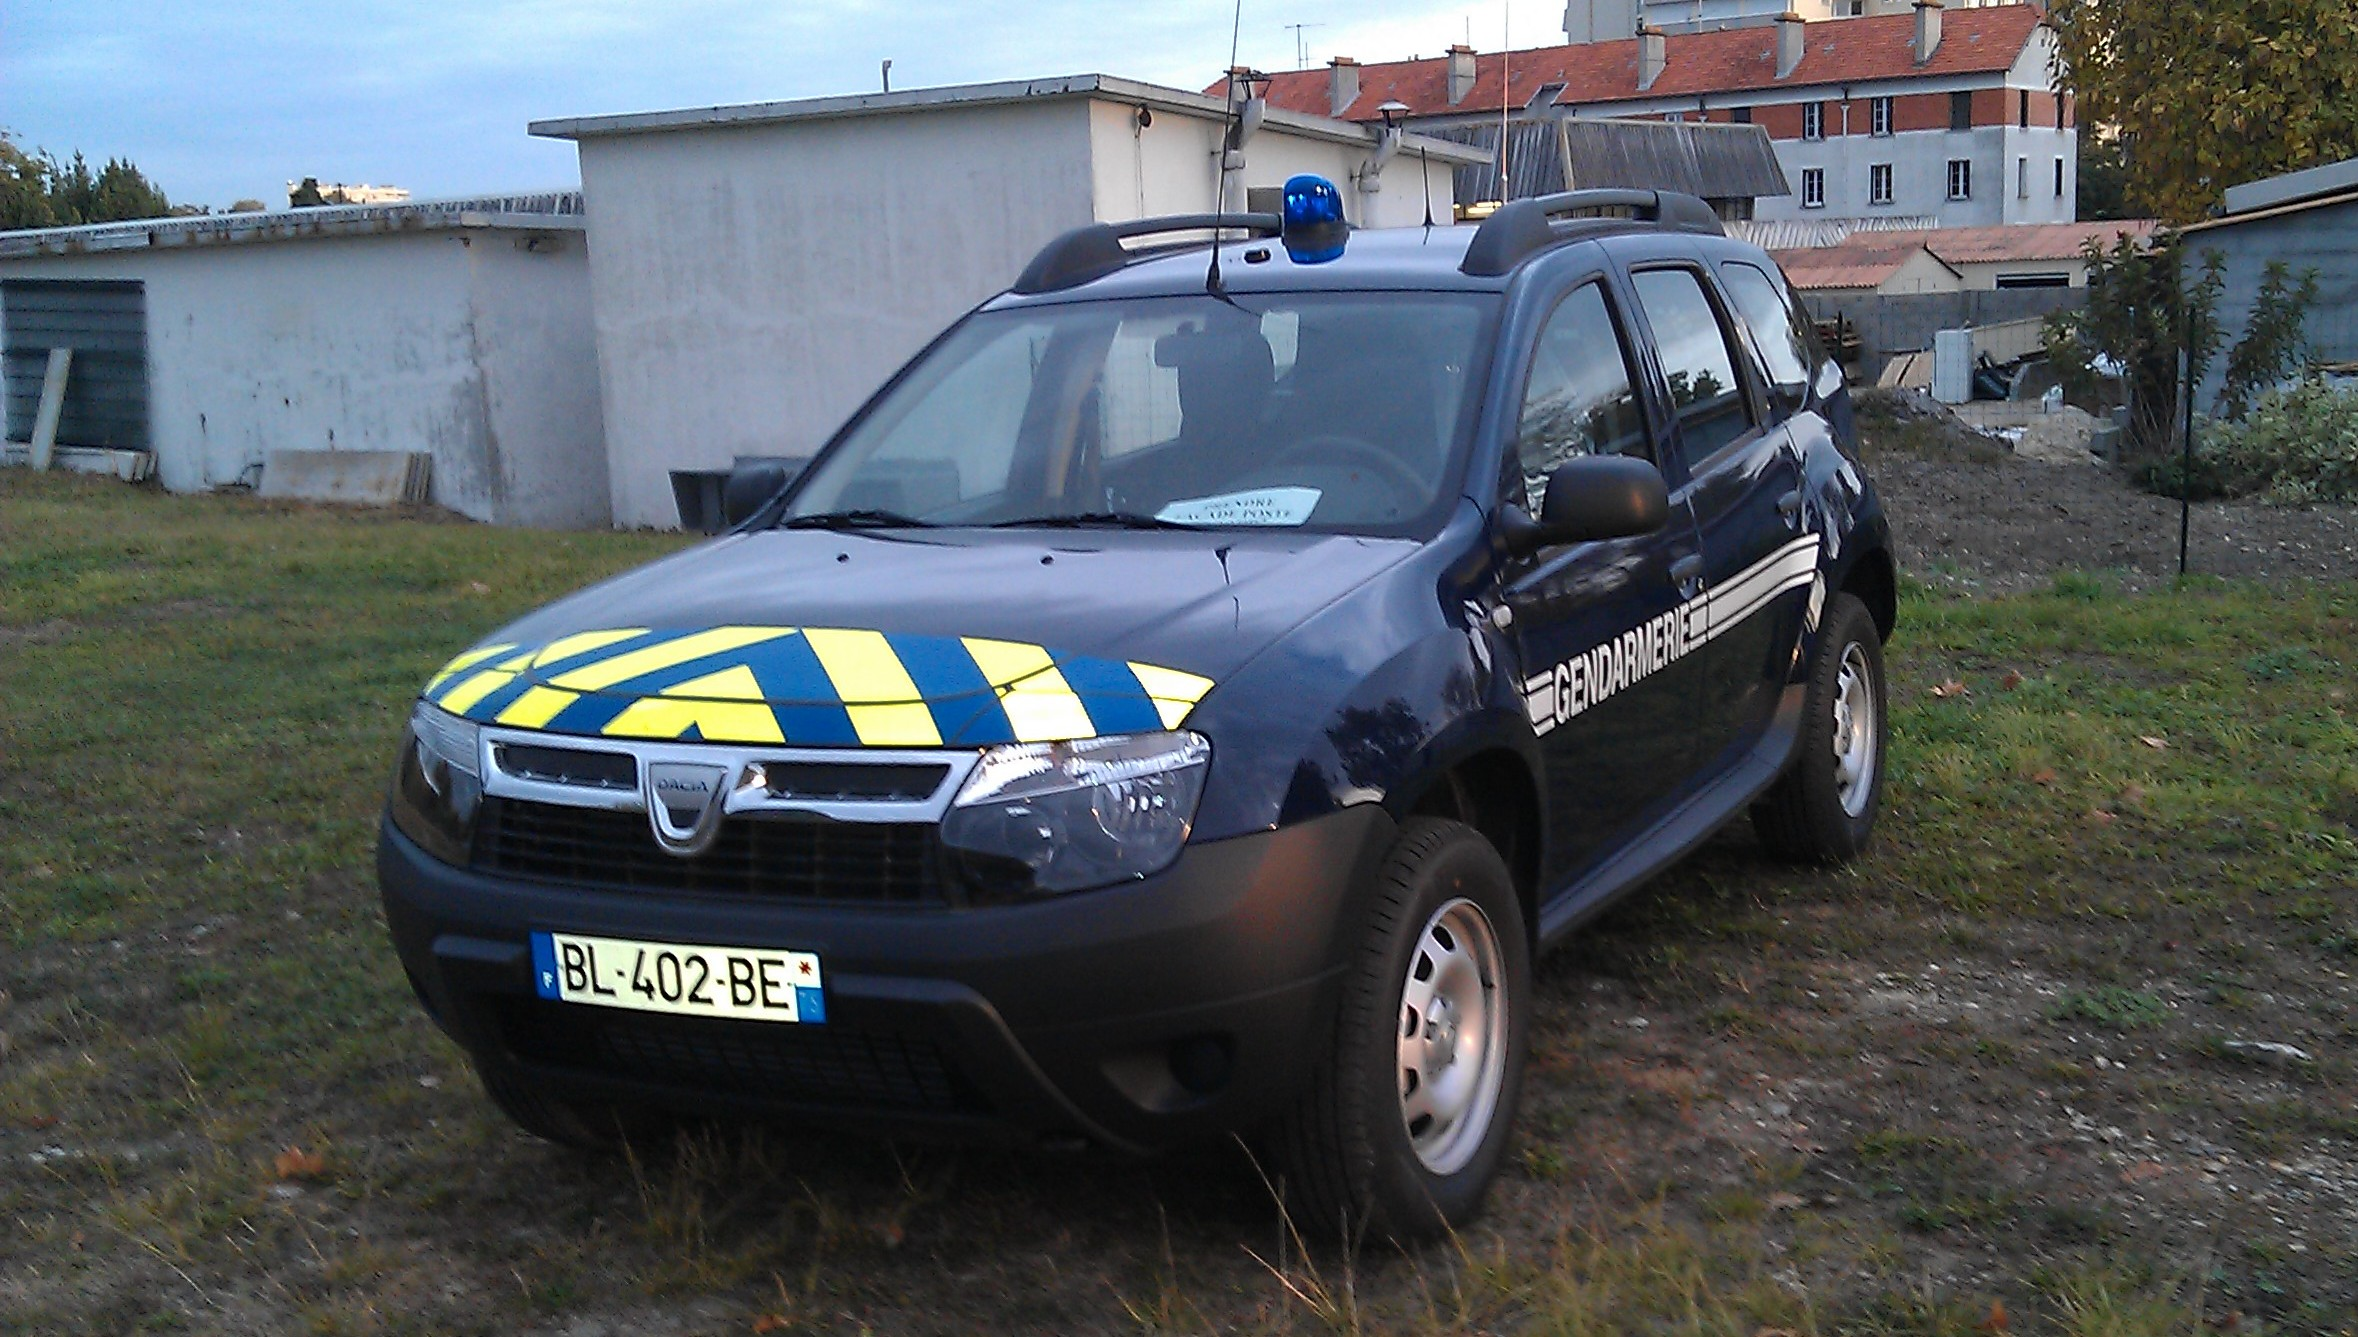 dacia duster gendarmerie 2 v hicules police gendarmerie chelle 1 enzo33 2007 photos. Black Bedroom Furniture Sets. Home Design Ideas